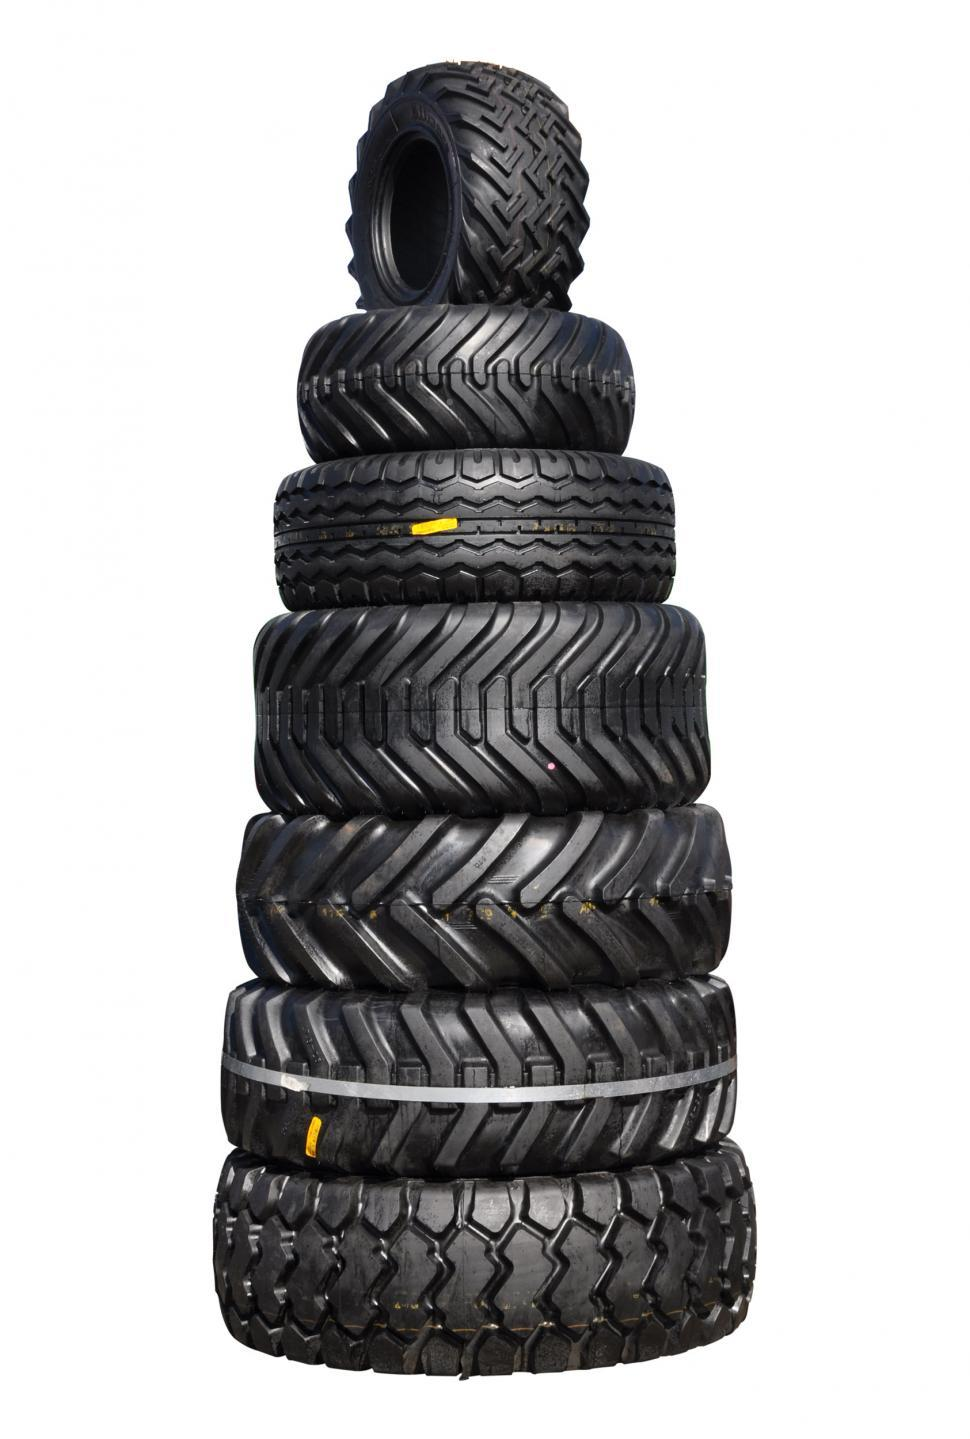 Download Free Stock HD Photo of Pile of tractor tyres Online